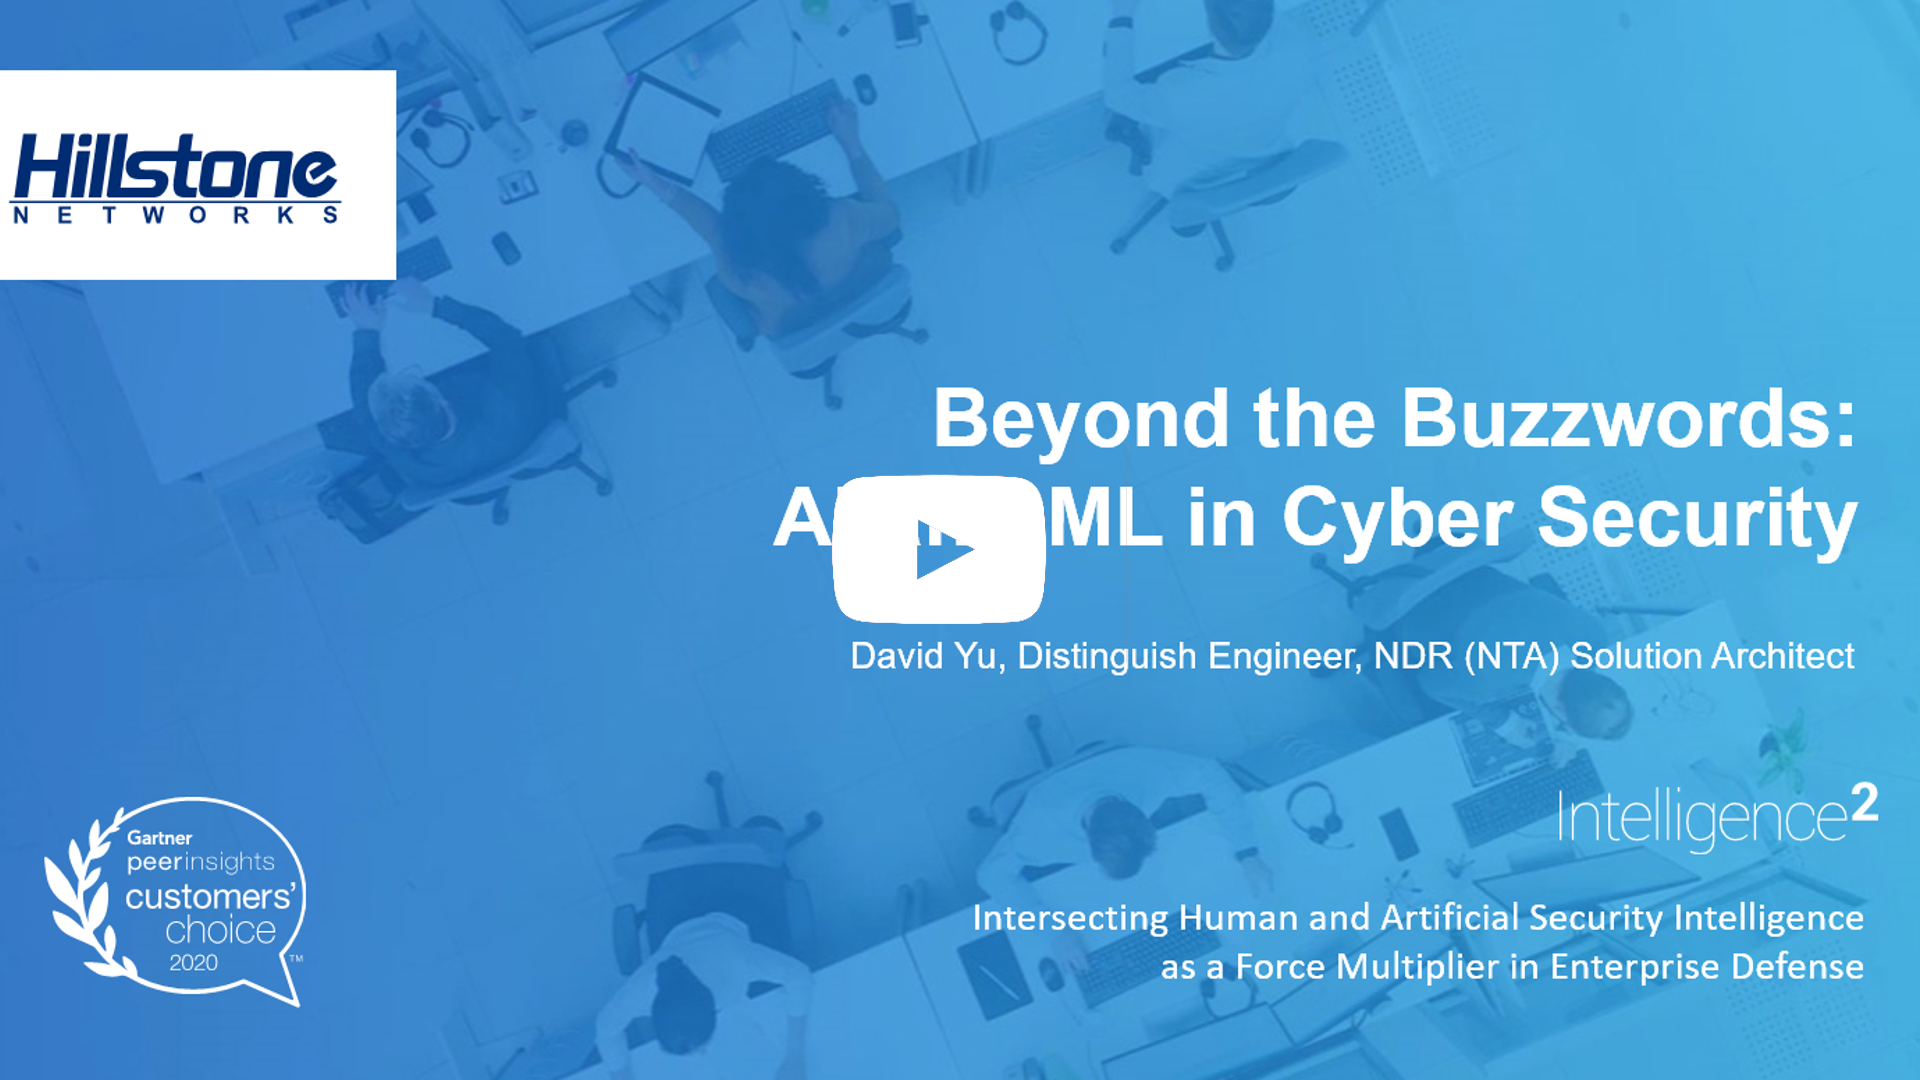 Watch On-demand Webinar: Beyond the Buzzwords of AI and ML in Network Security